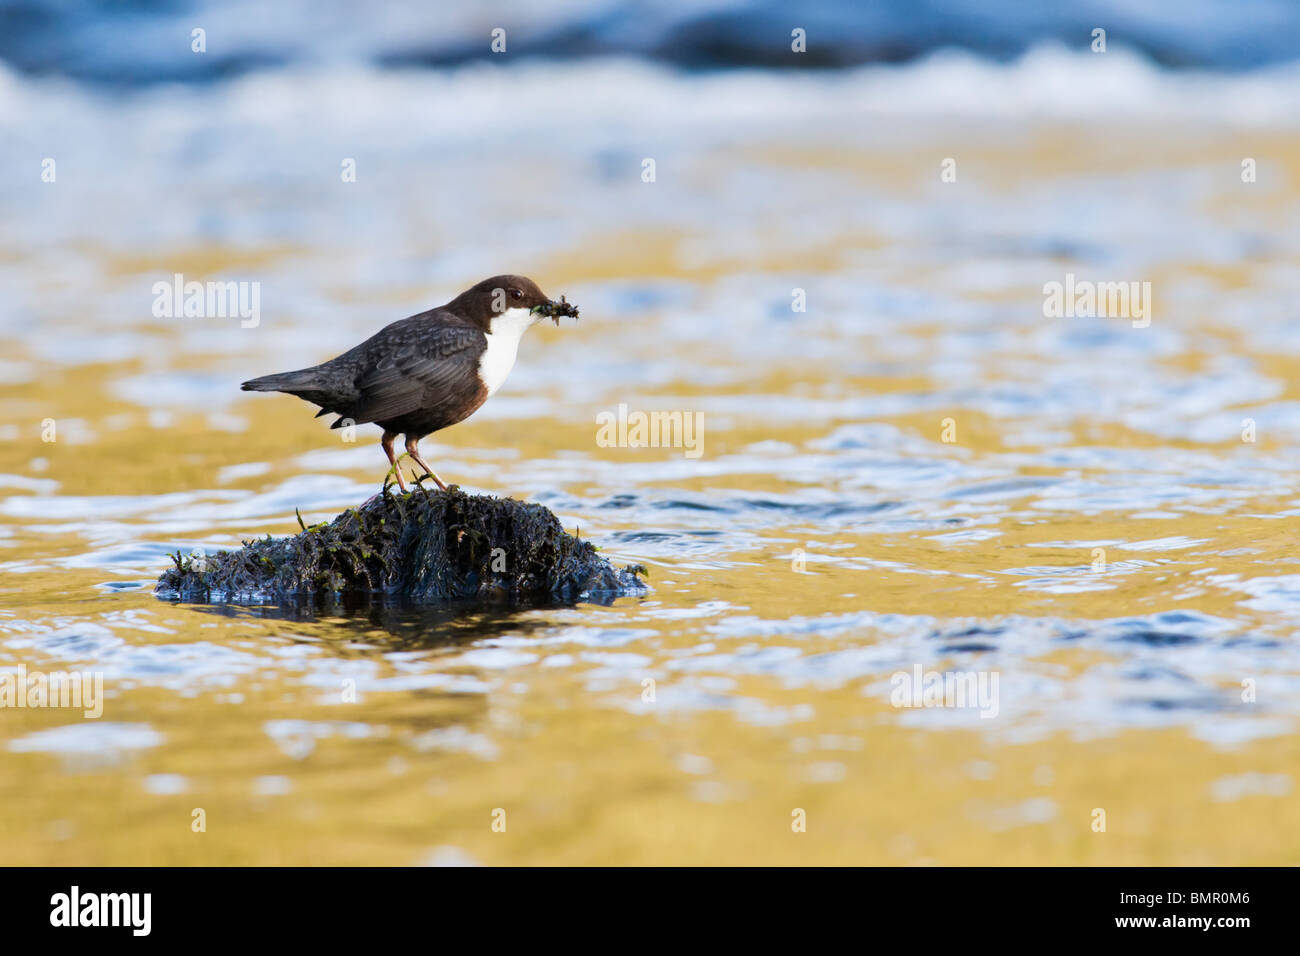 Dipper perched on rock in river - Stock Image